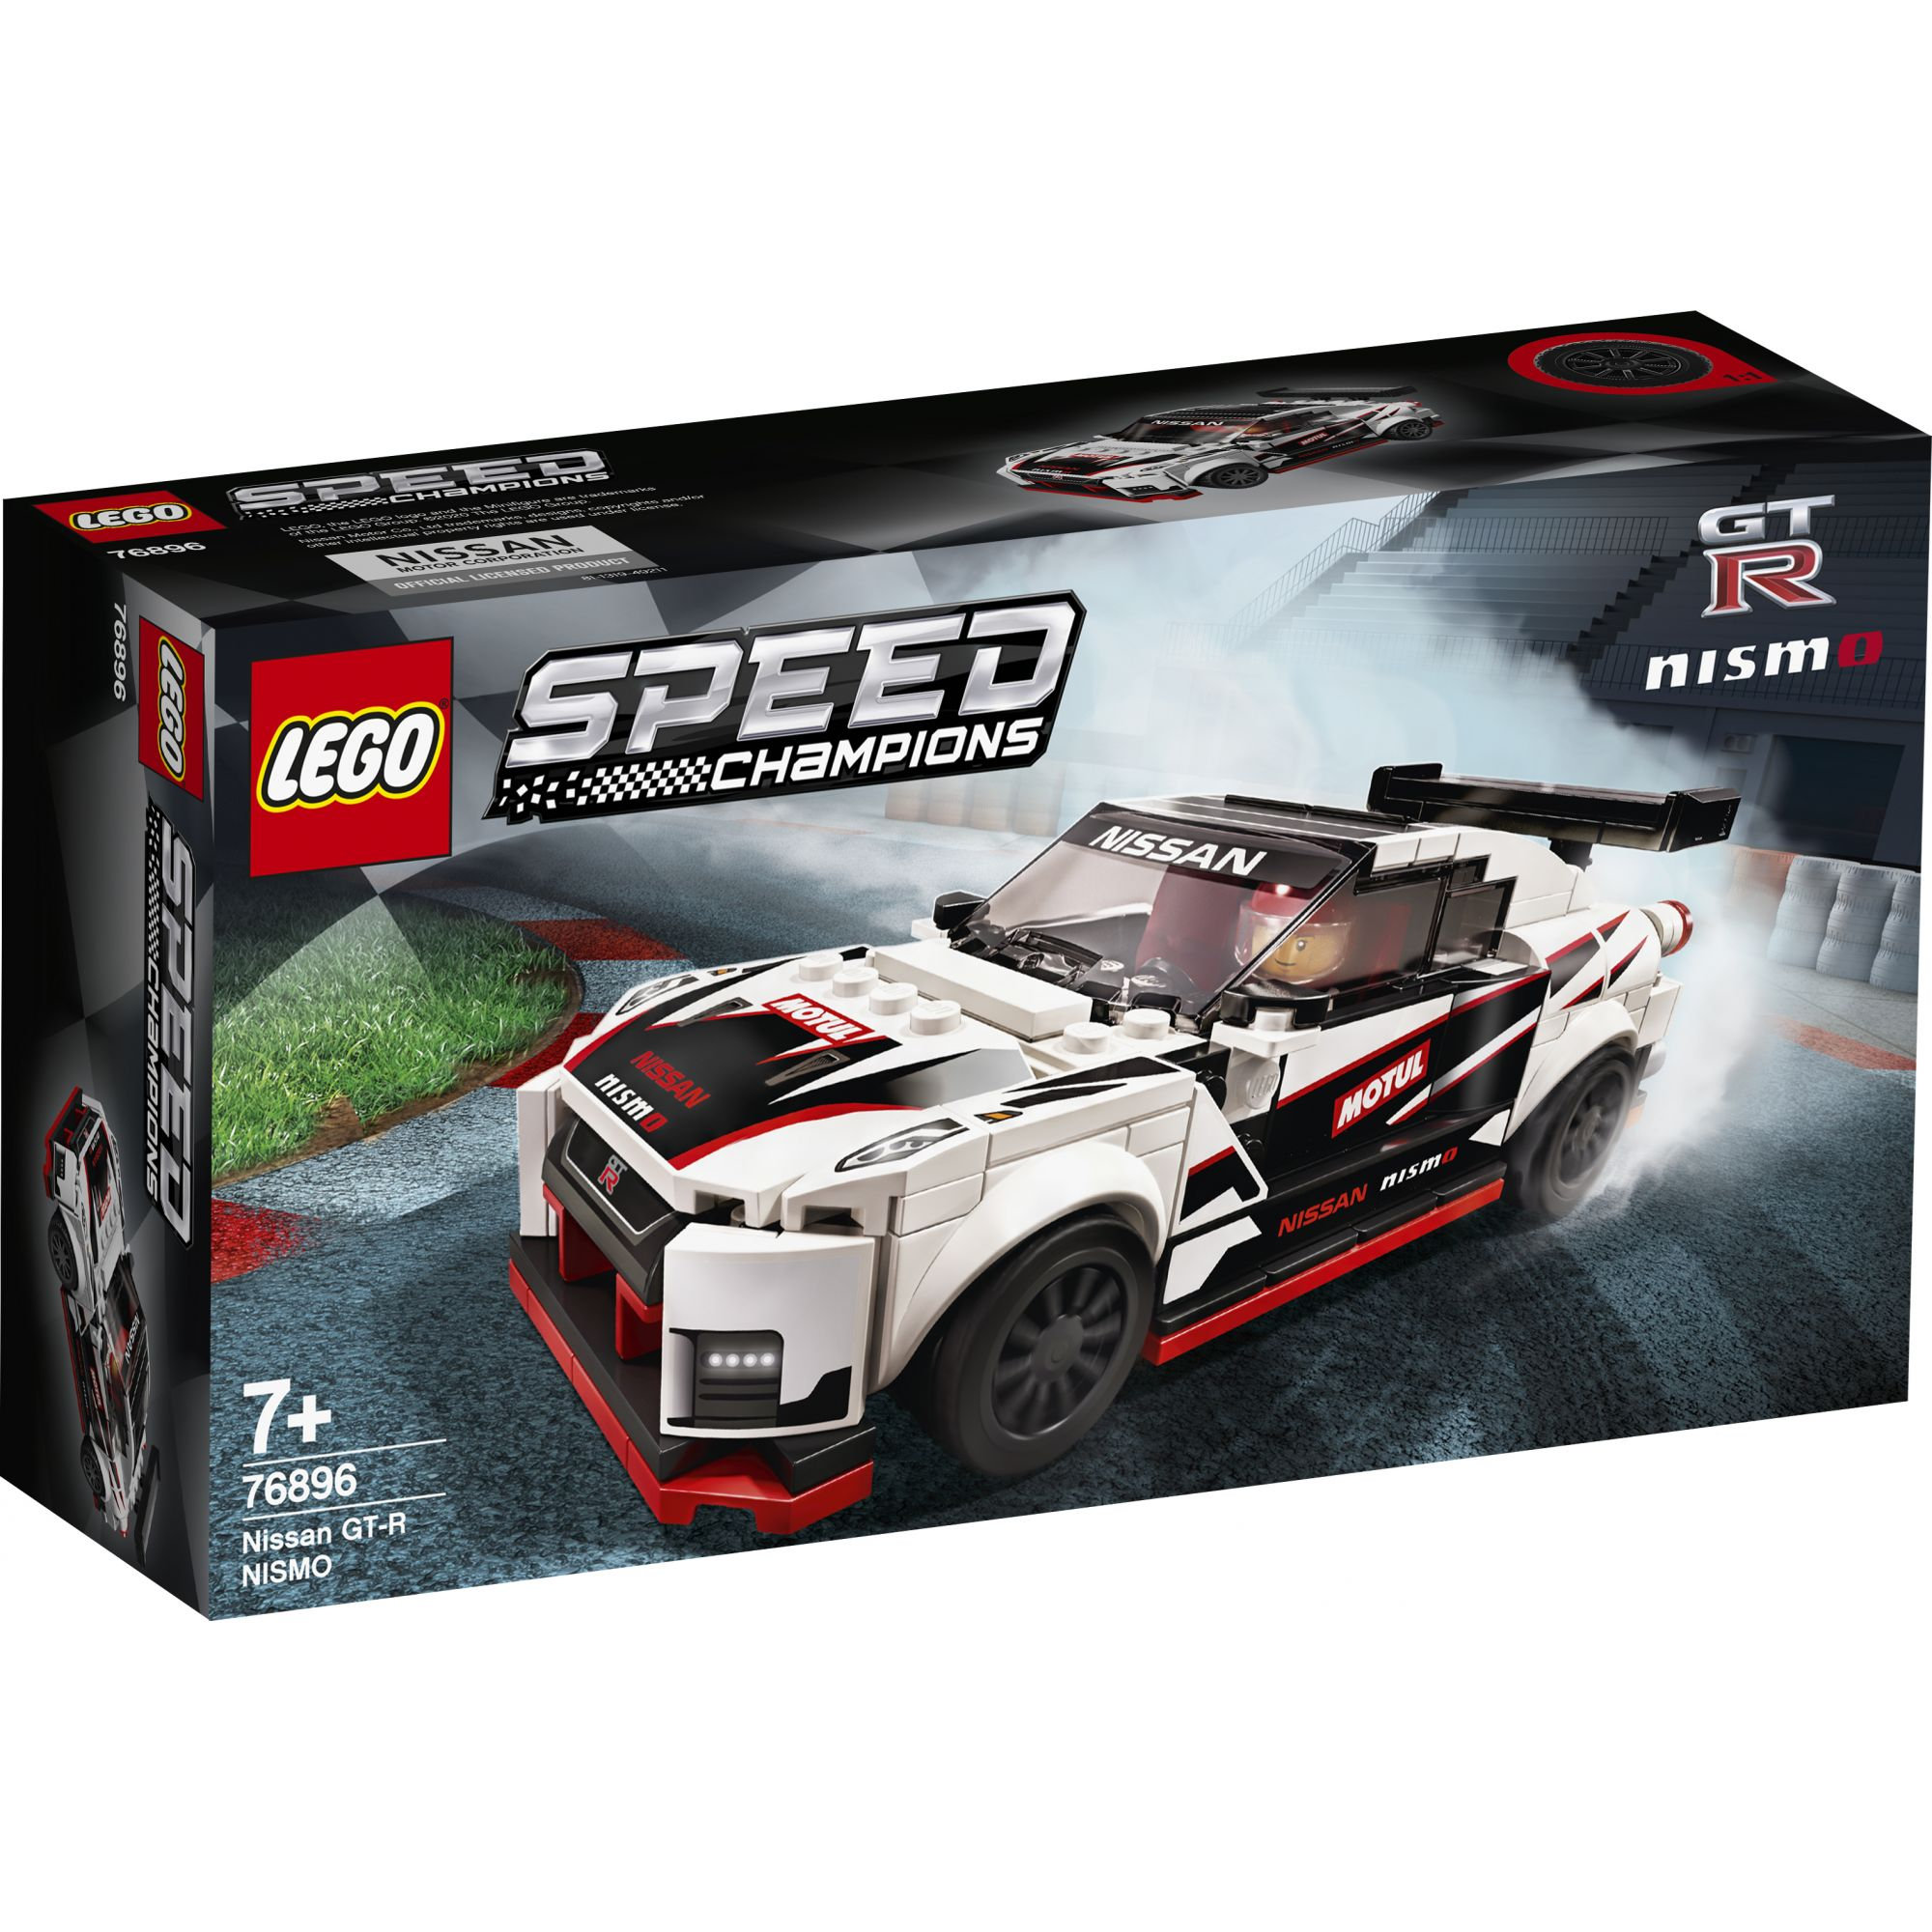 LEGO Speed Champions Nissan GT-R NISMO - 76896